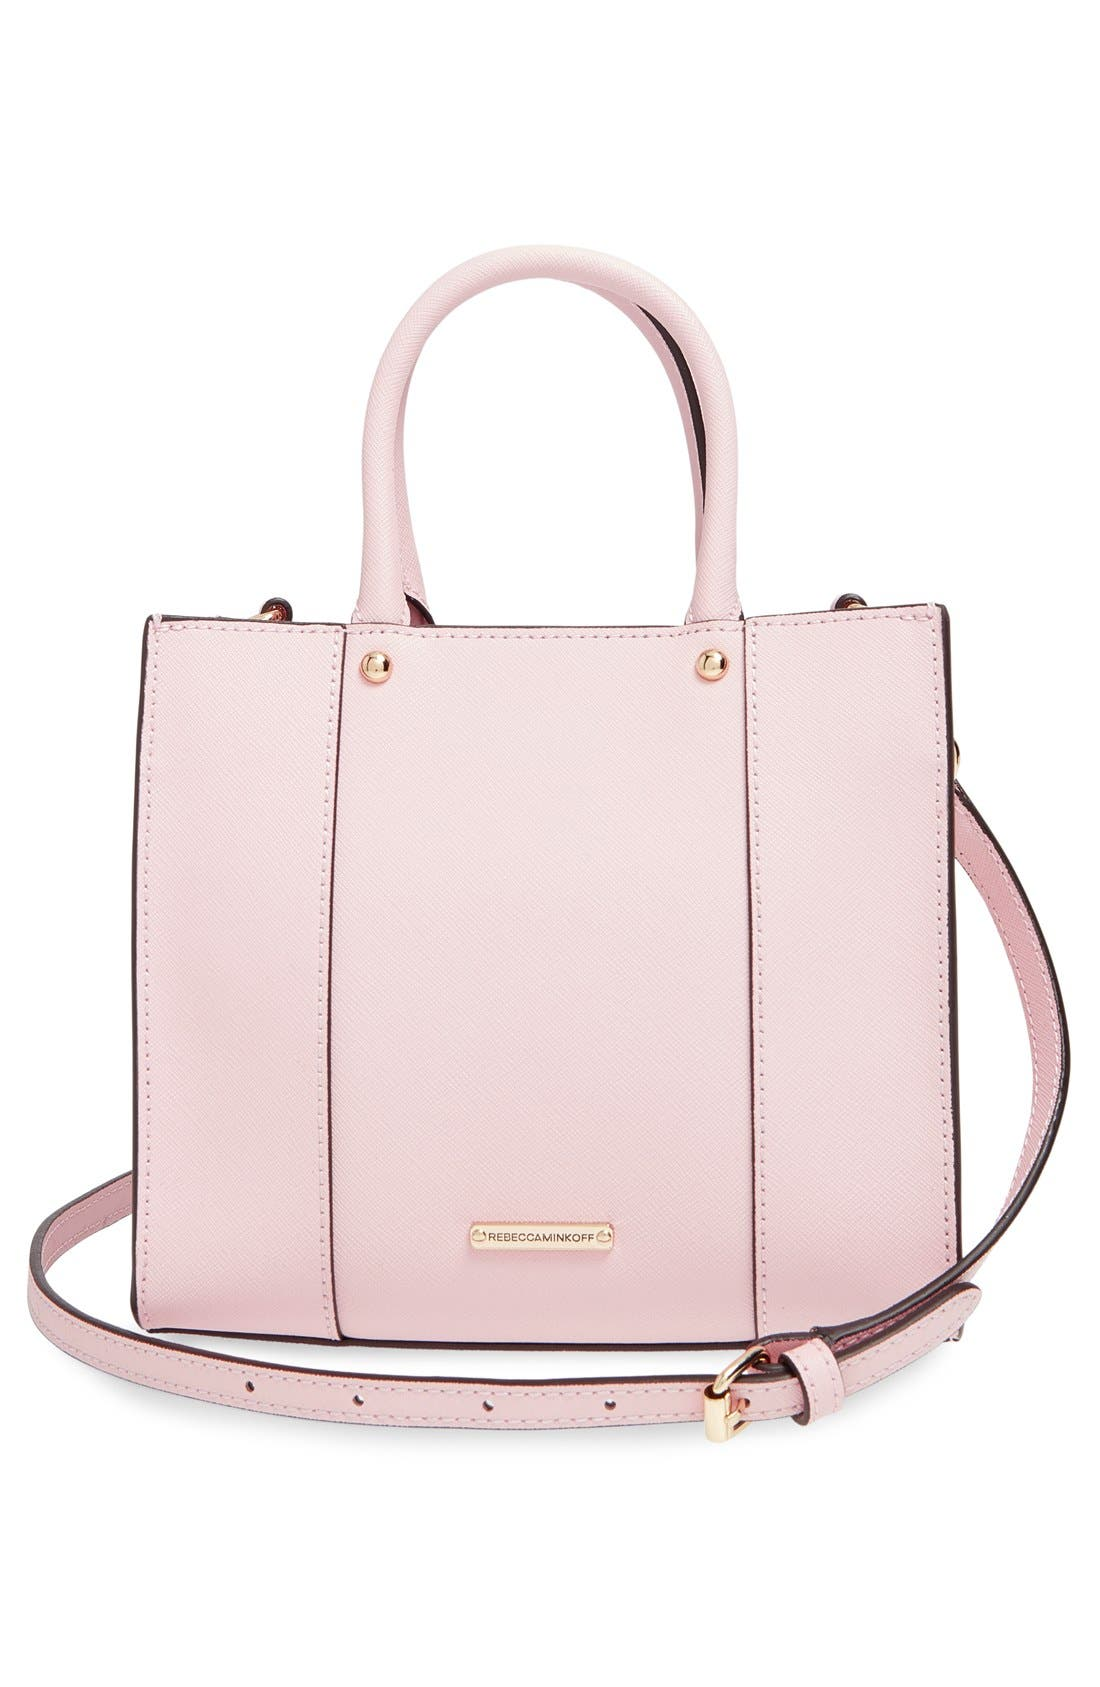 'Mini MAB Tote' Crossbody Bag,                             Alternate thumbnail 93, color,